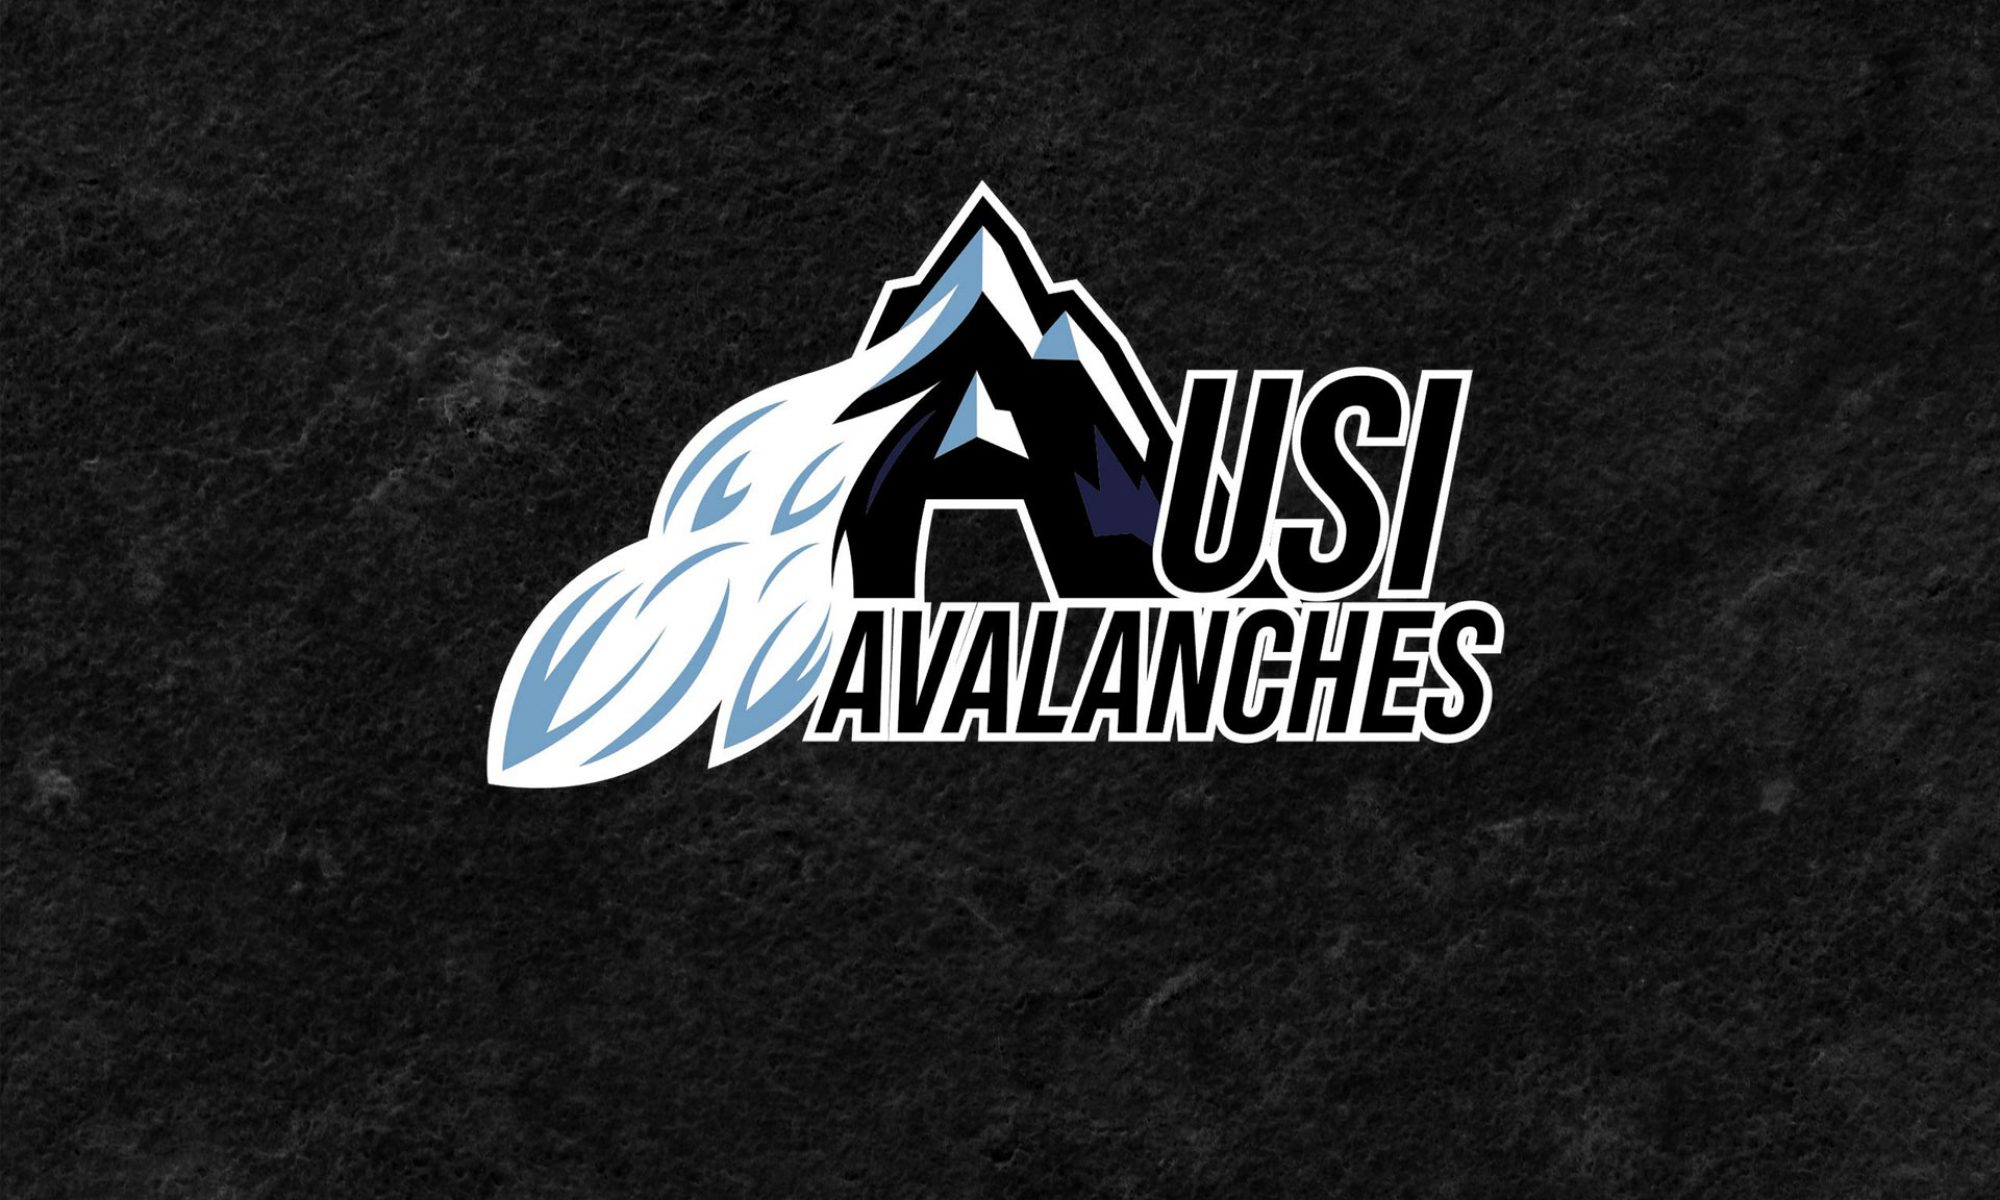 USI Avalanches